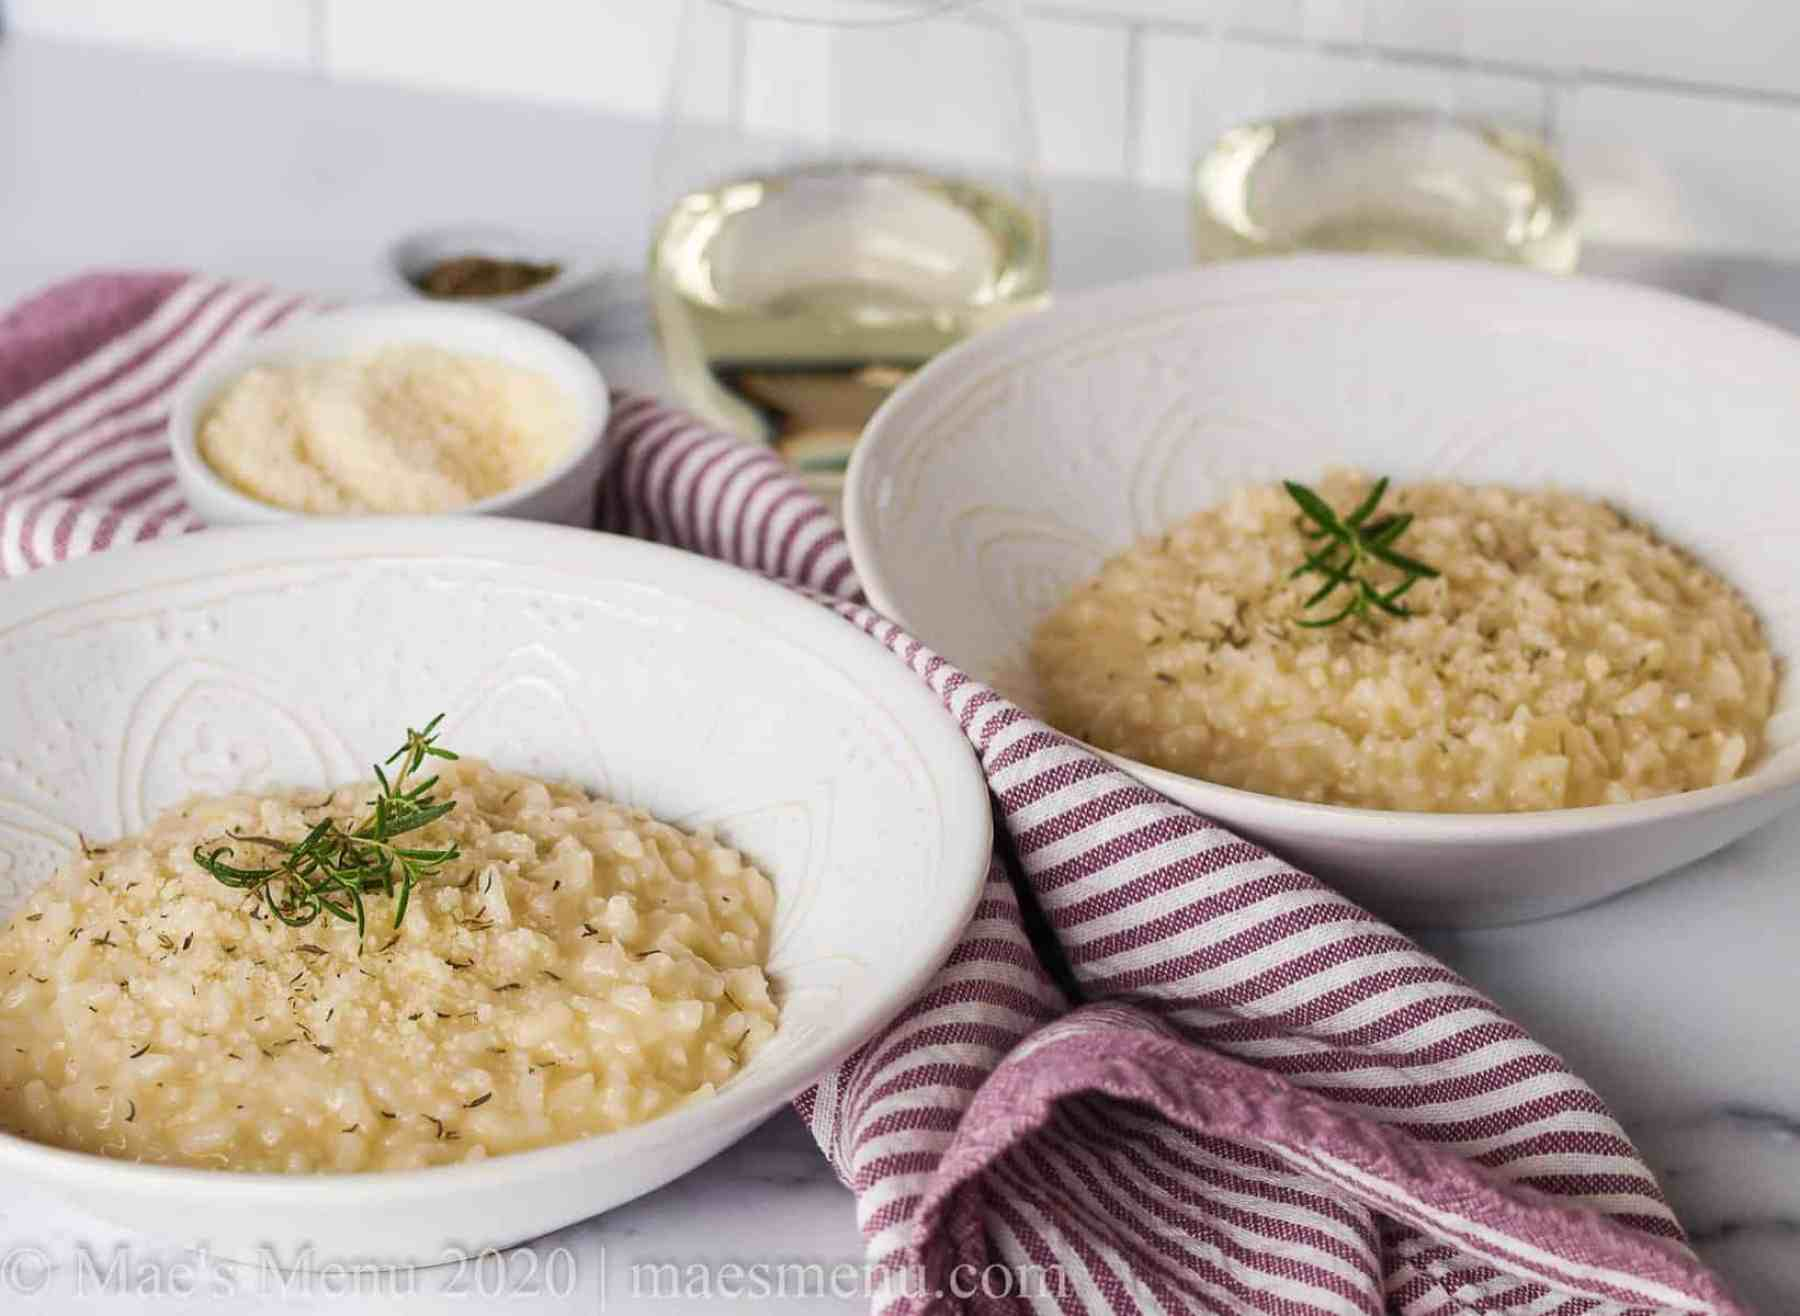 Two white bowls of risotto next to glasses of white wine, parmesan cheese, and a purple striped towel